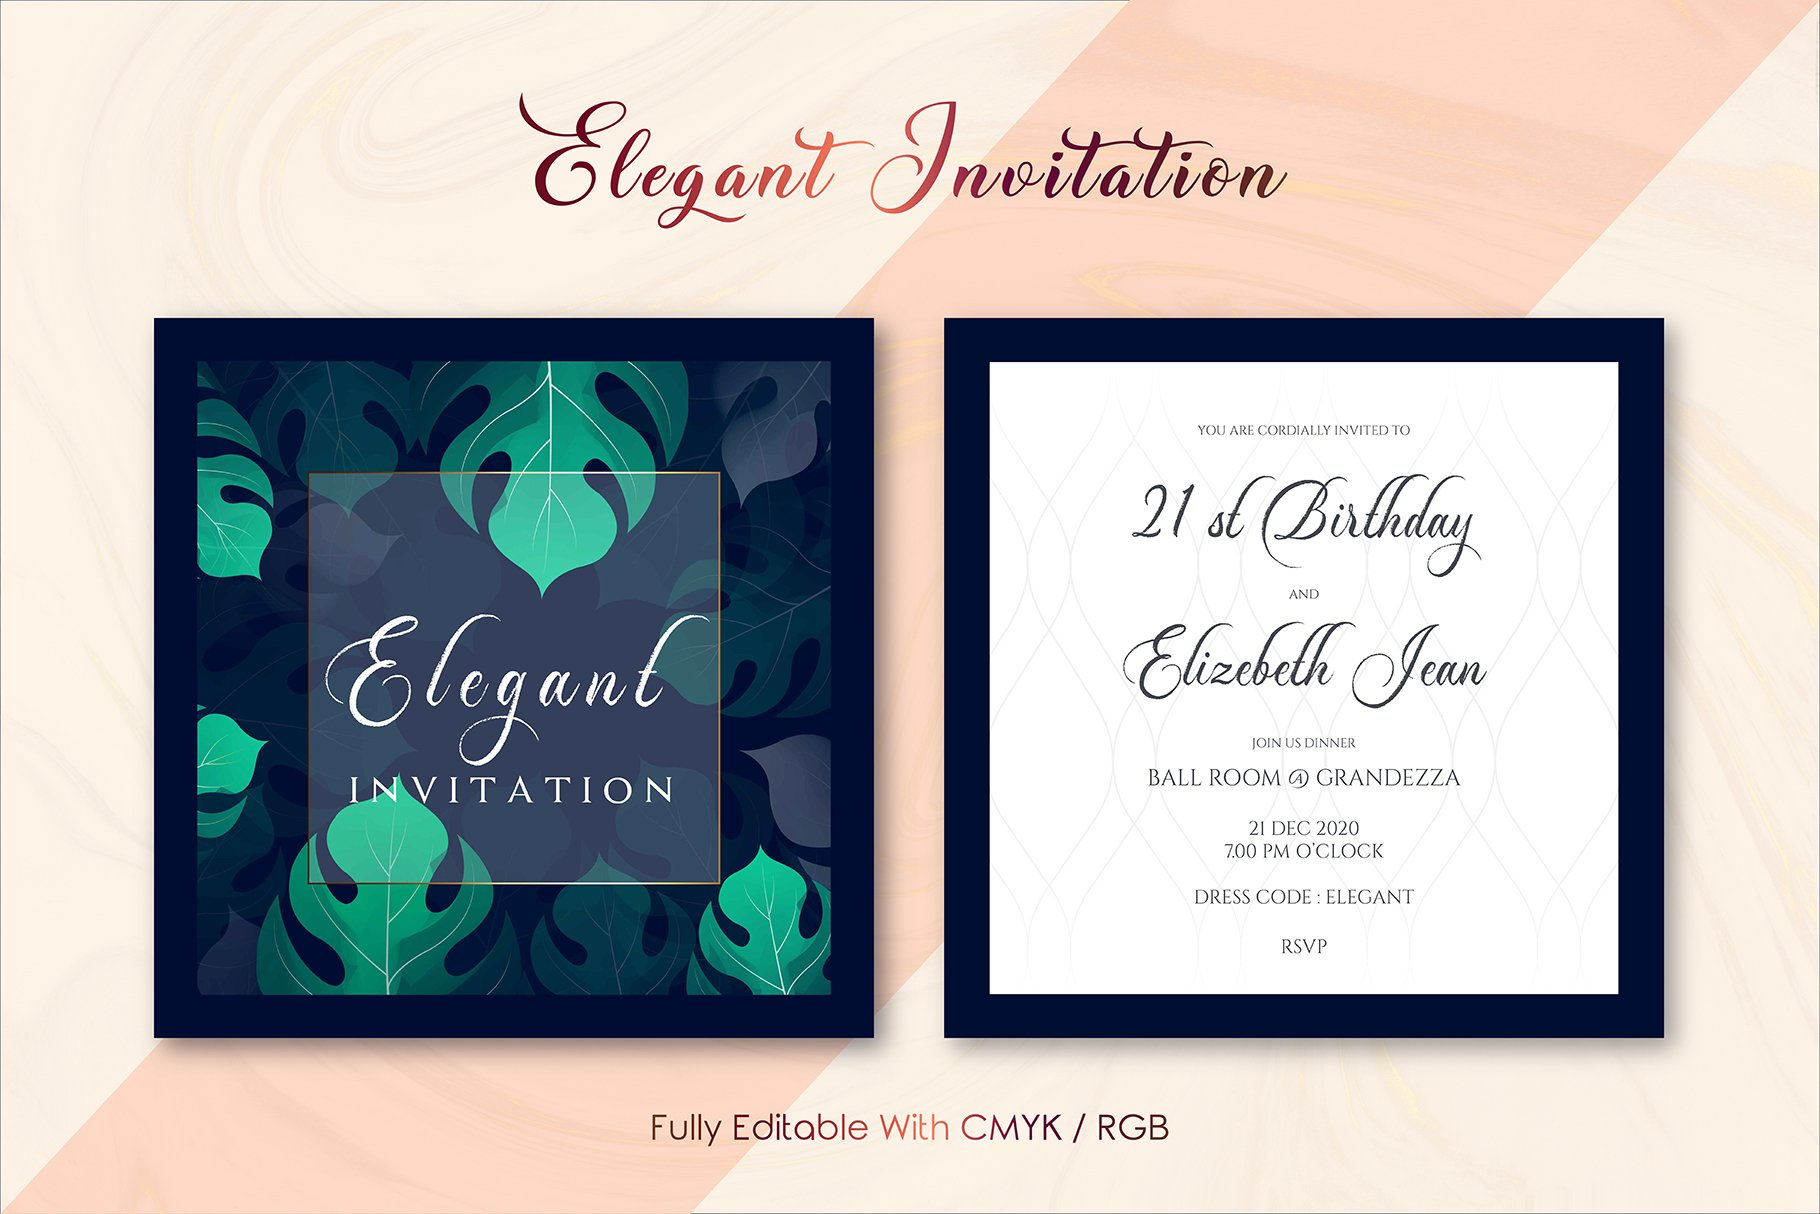 Elegant Invitation Template Ver : N | Creative Illustrator Templates ~  Creative Market